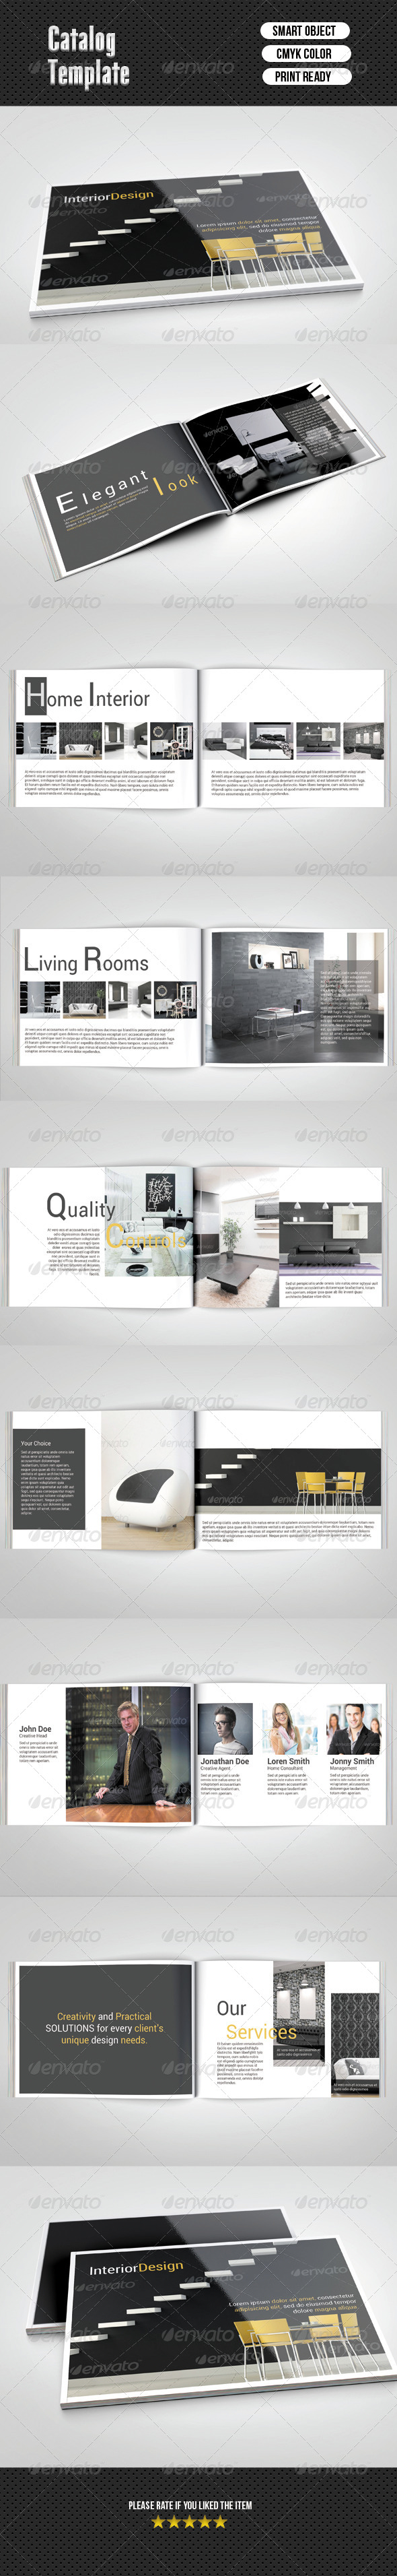 Catalog- Interior Design (16 Pages) - Catalogs Brochures